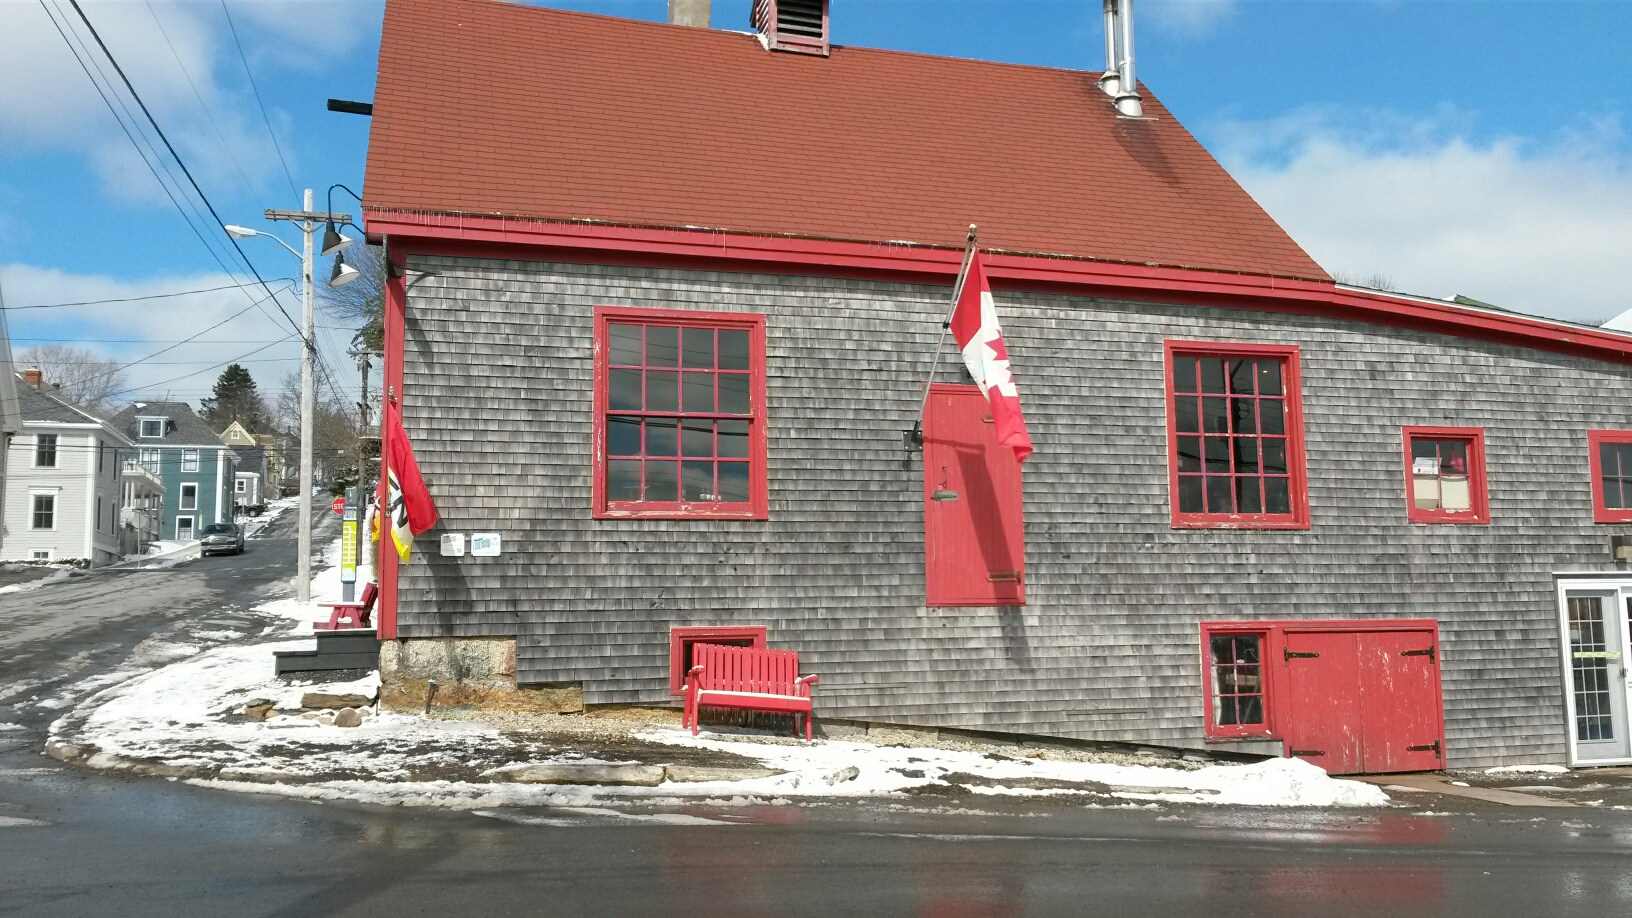 Ironworks Distillery building in Lunenburg